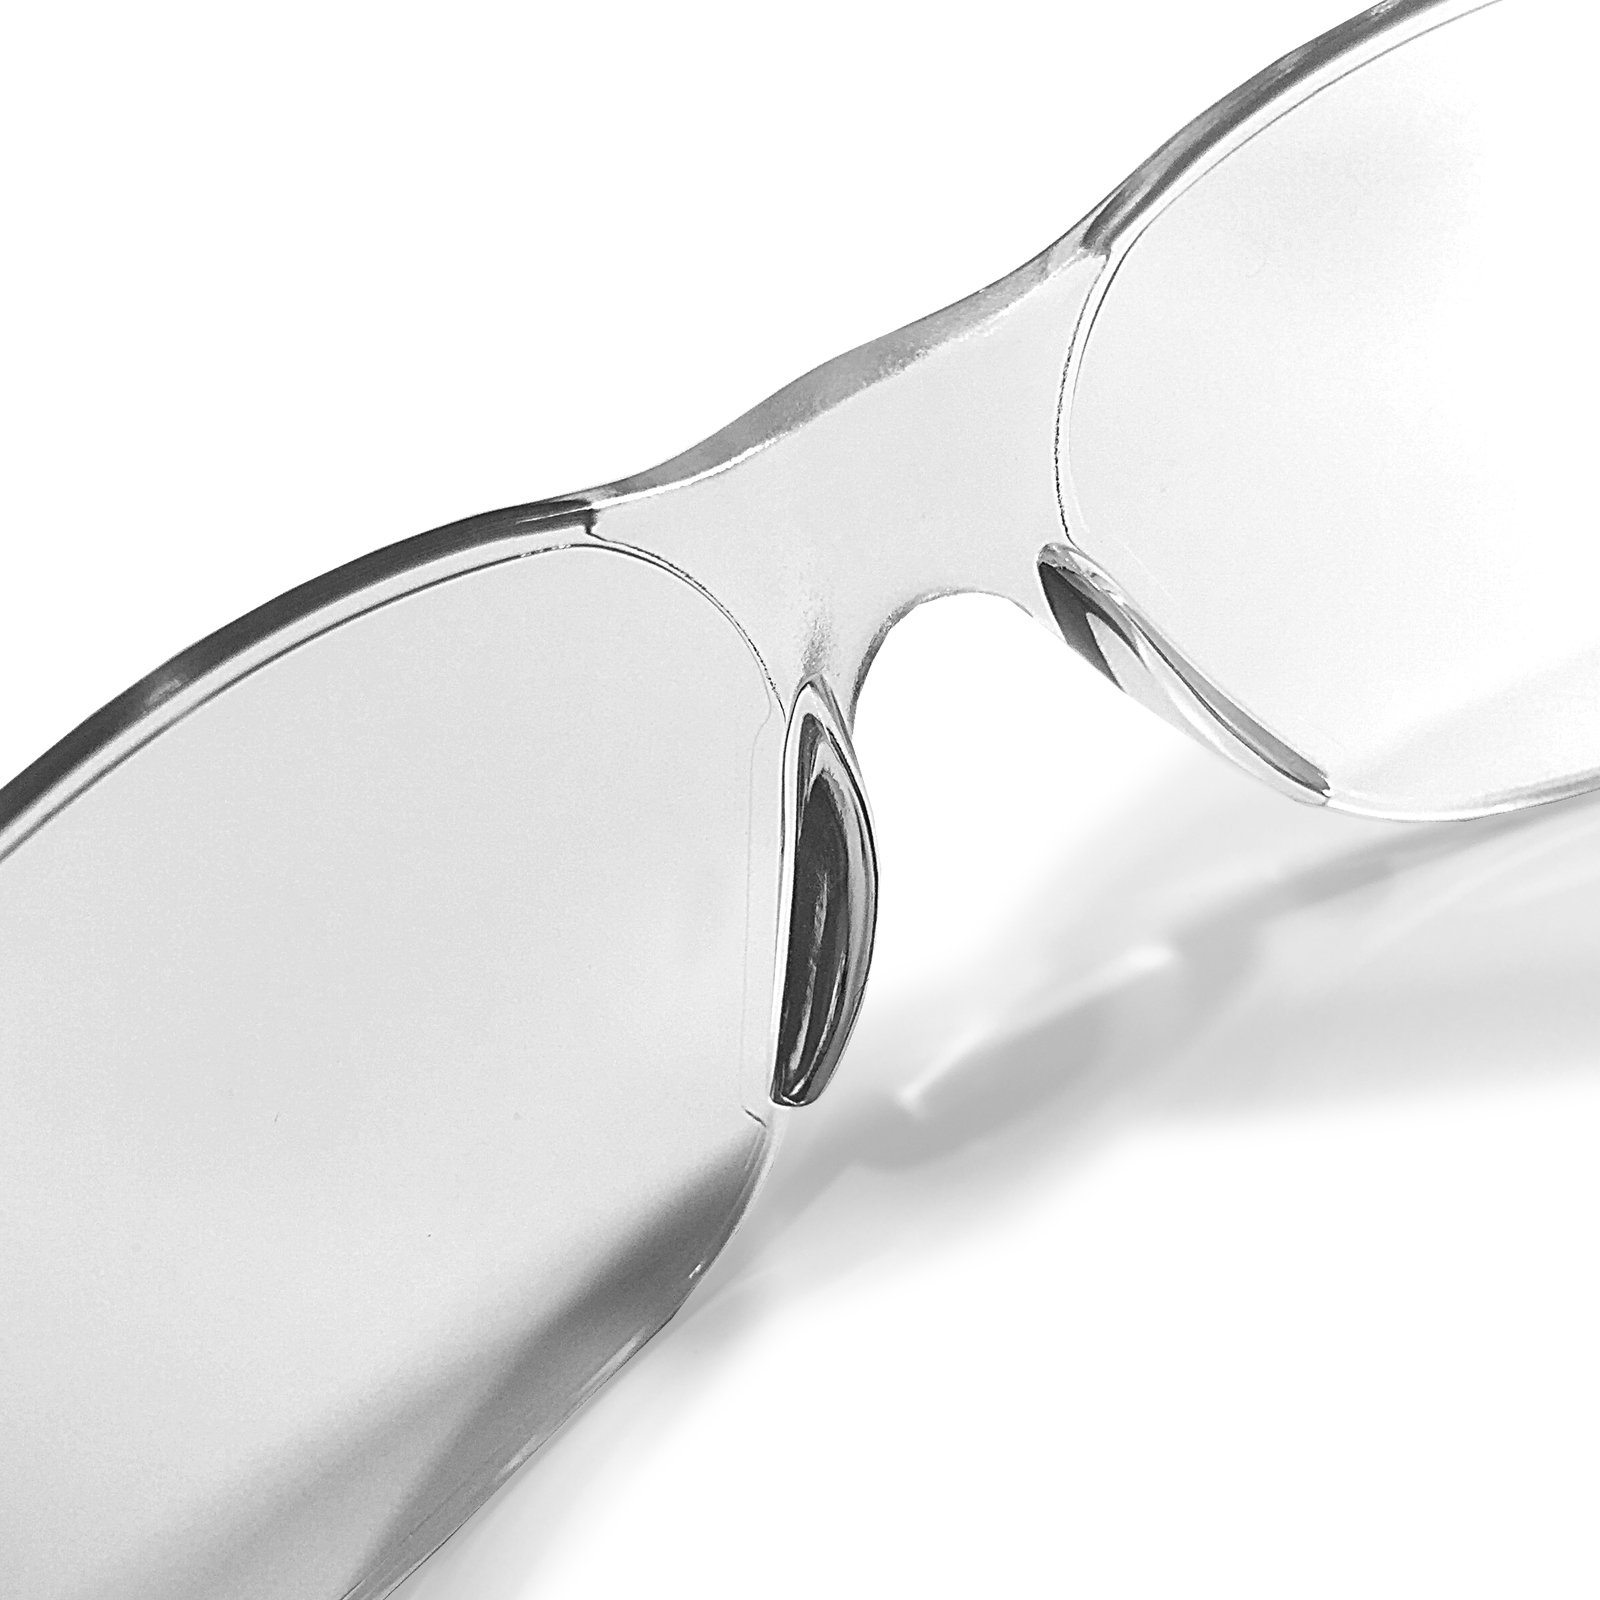 JORESTECH Eyewear Protective Safety Glasses, Polycarbonate Impact Resistant Lens Pack of 12 (Clear) by JORESTECH (Image #4)